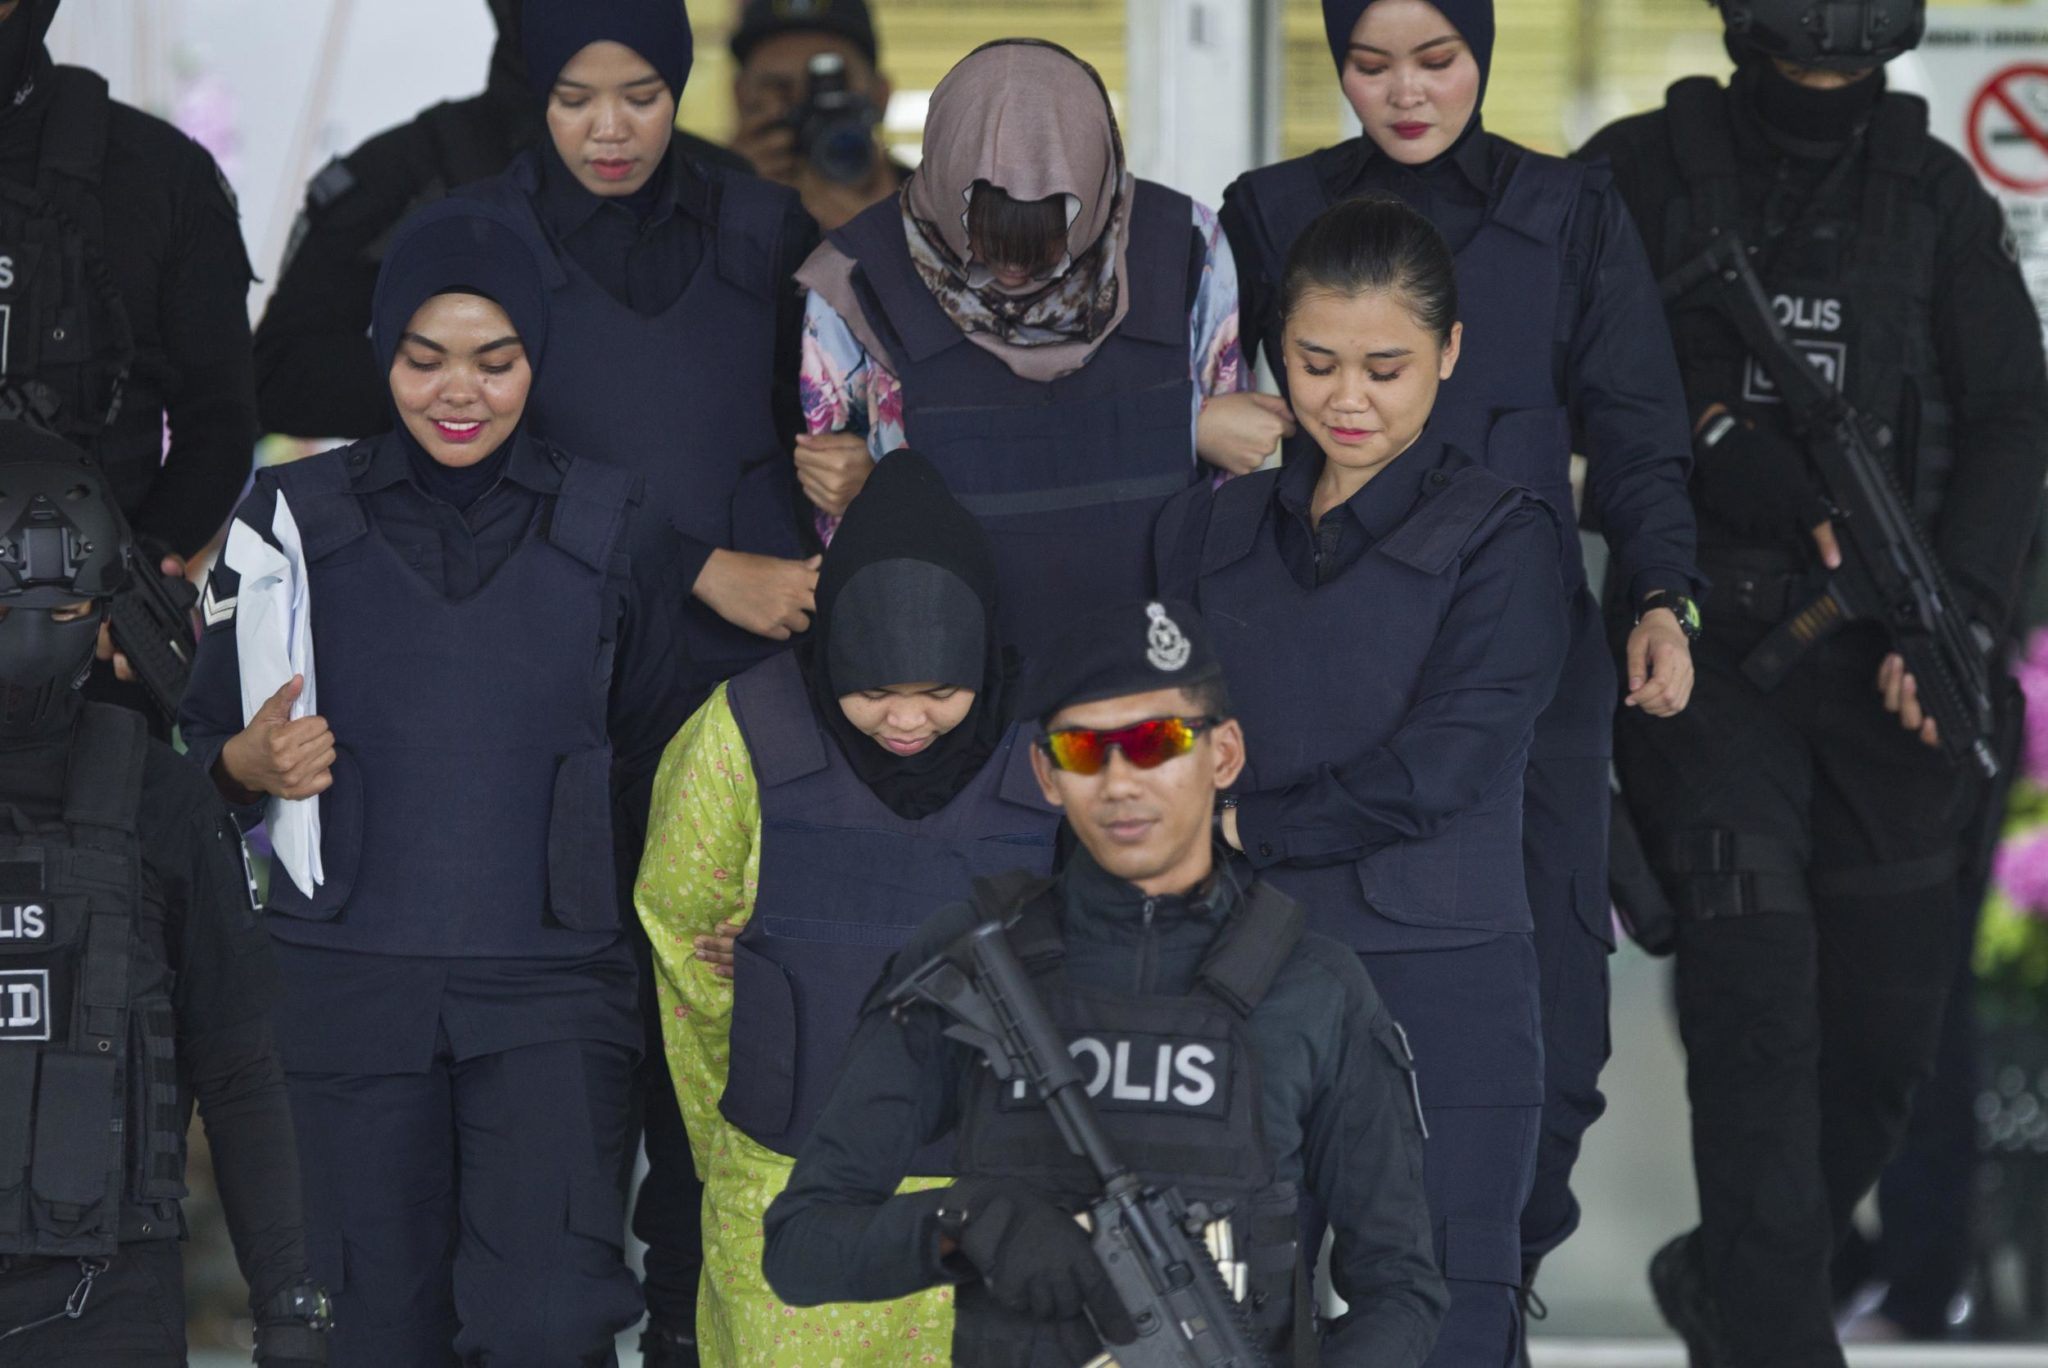 Malaysia Court To Resume Kim Jong Nam Murder Trial On Jan. 7